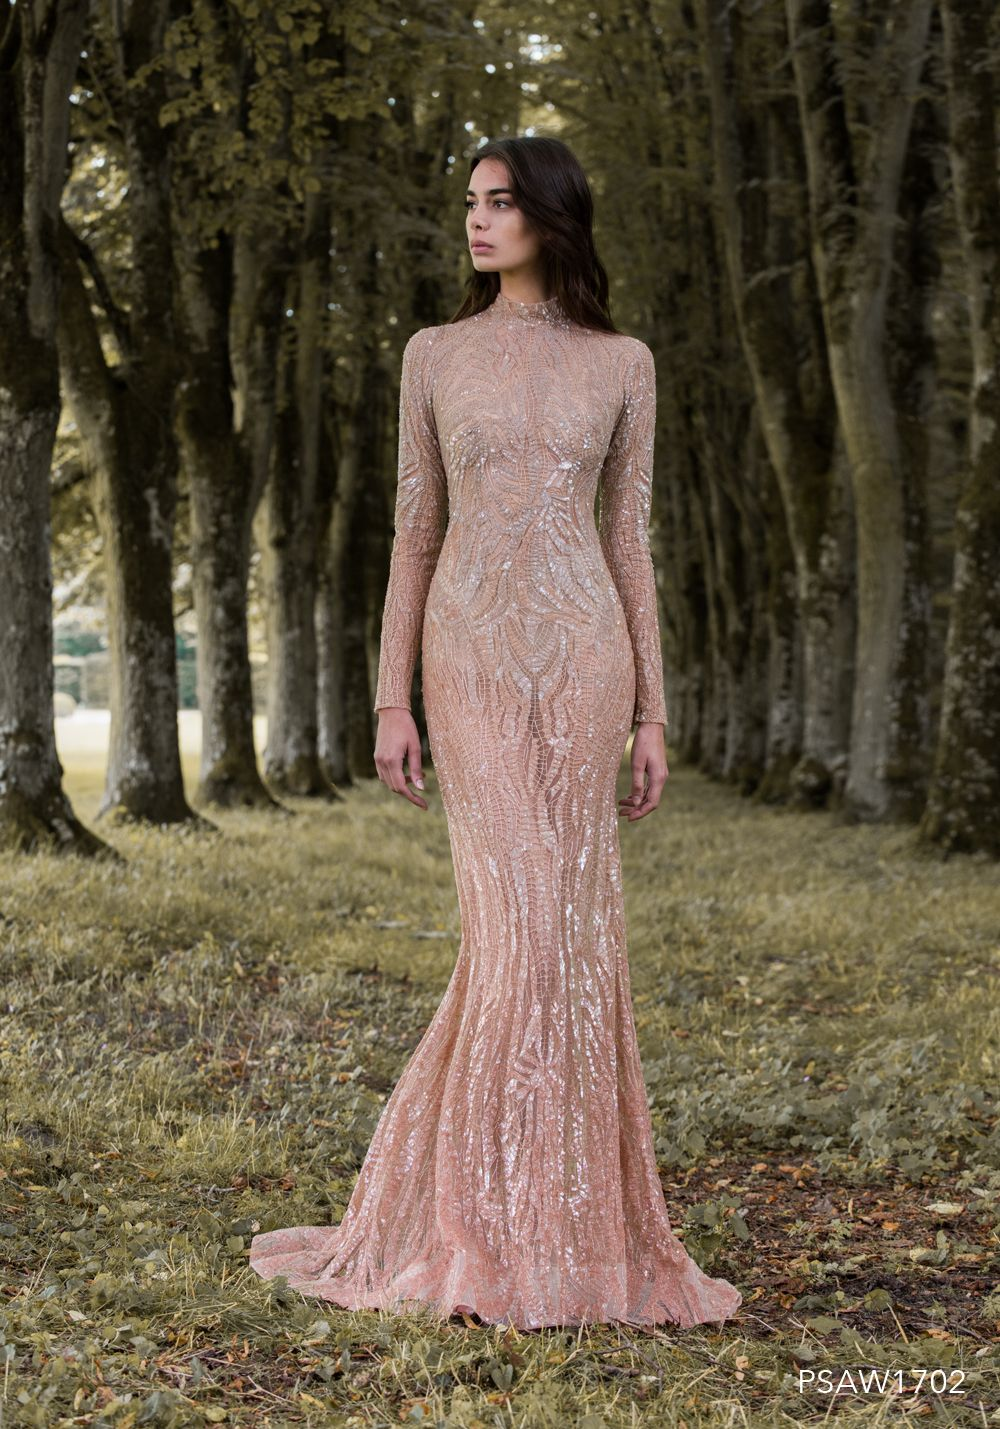 Paolo sebastian psaw sleeved gown with iridescent wing